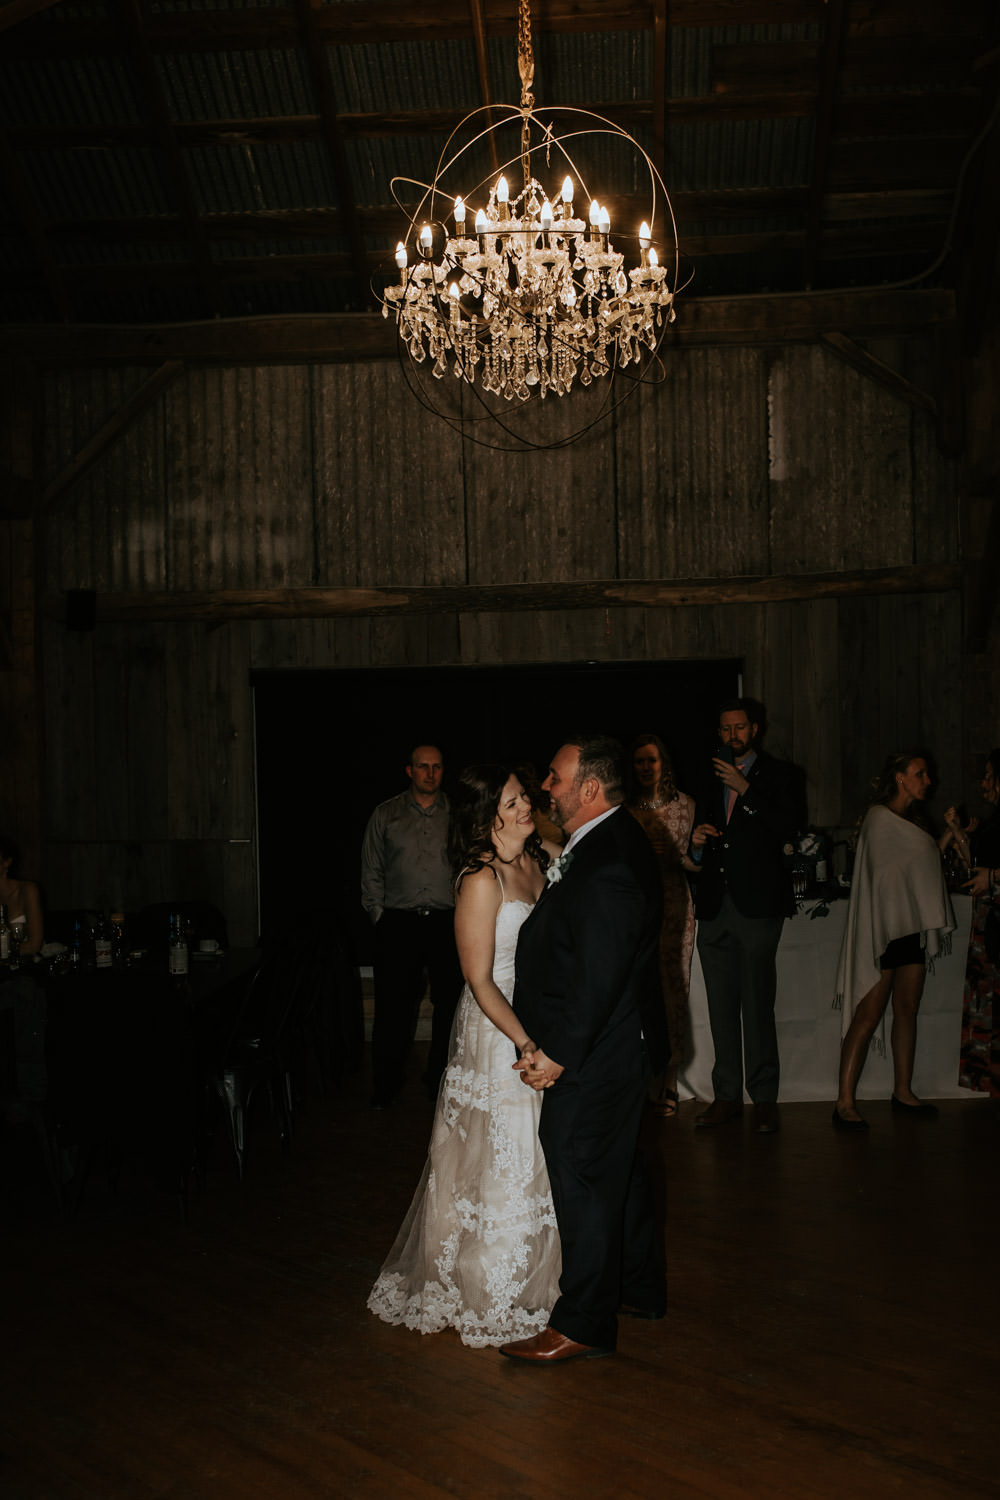 wedding couple dancing in a barn under a crystal chandelier